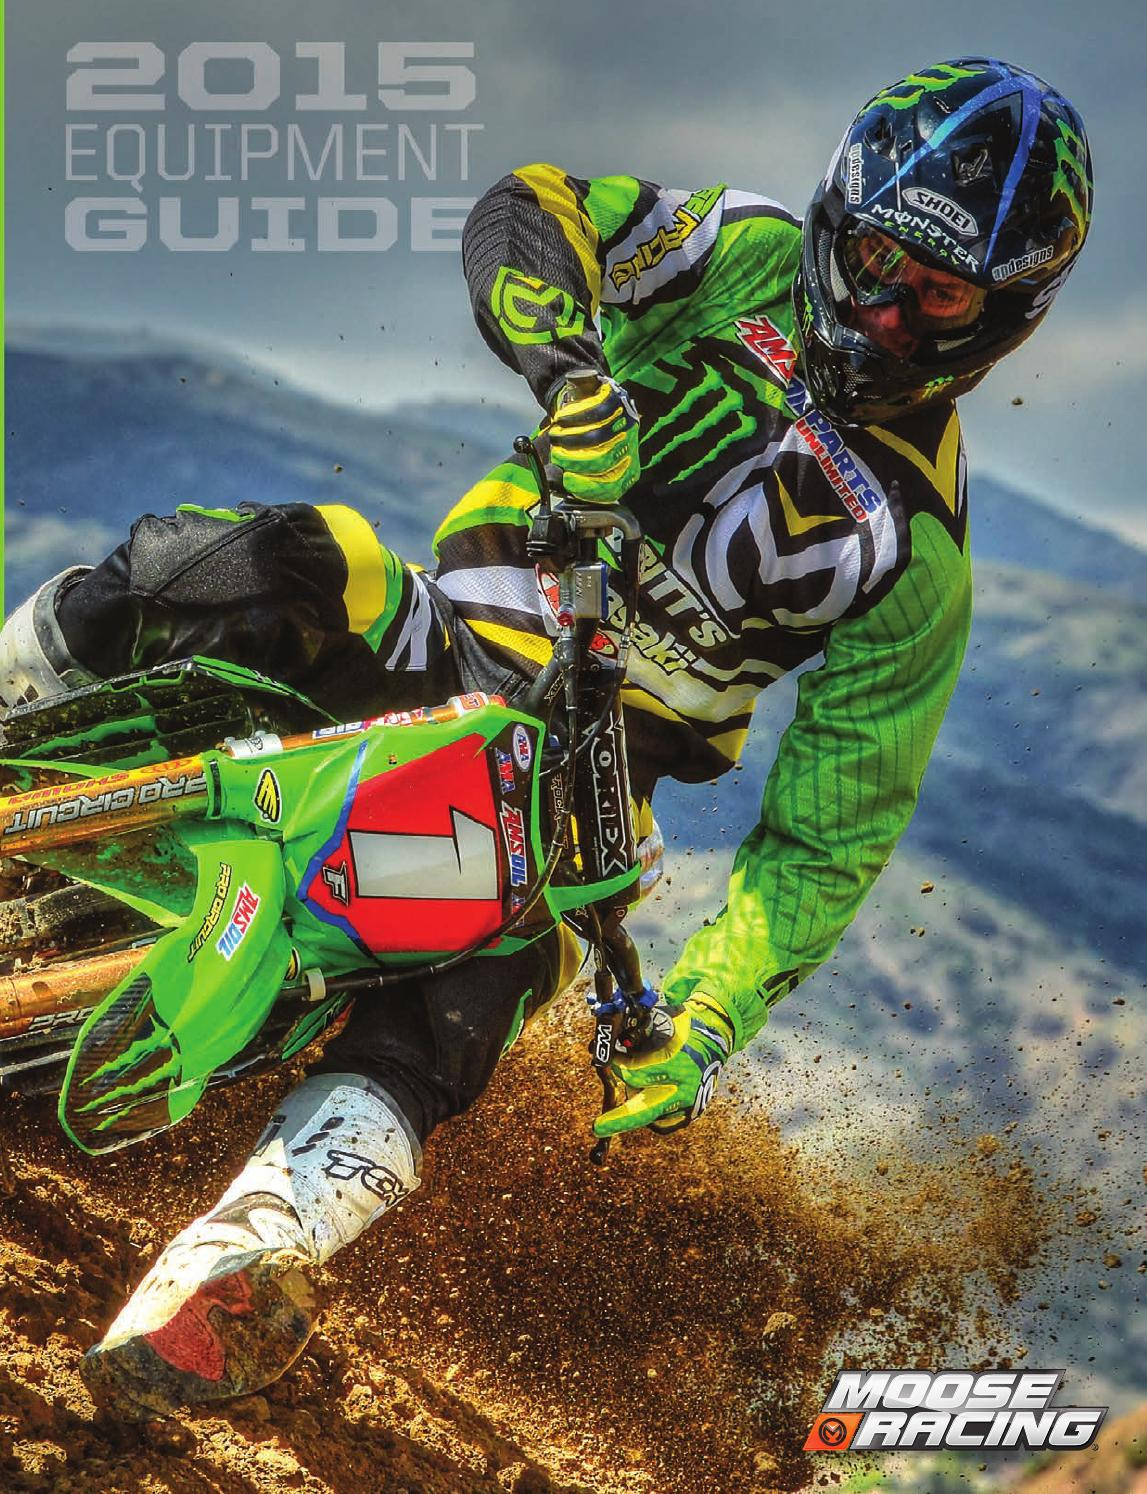 Catalogo Moose Racing 2015 By Unionbike Issuu Drz110 Wiring Diagram